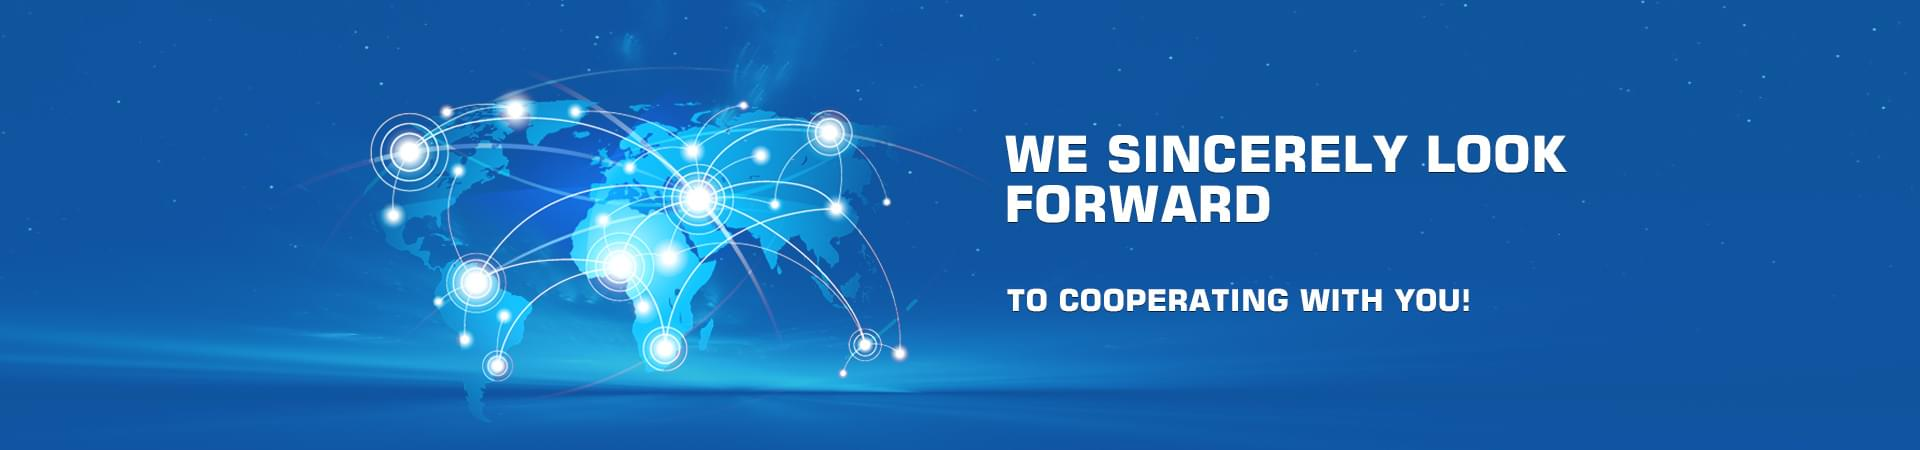 We sincerely look forward to cooperating with you